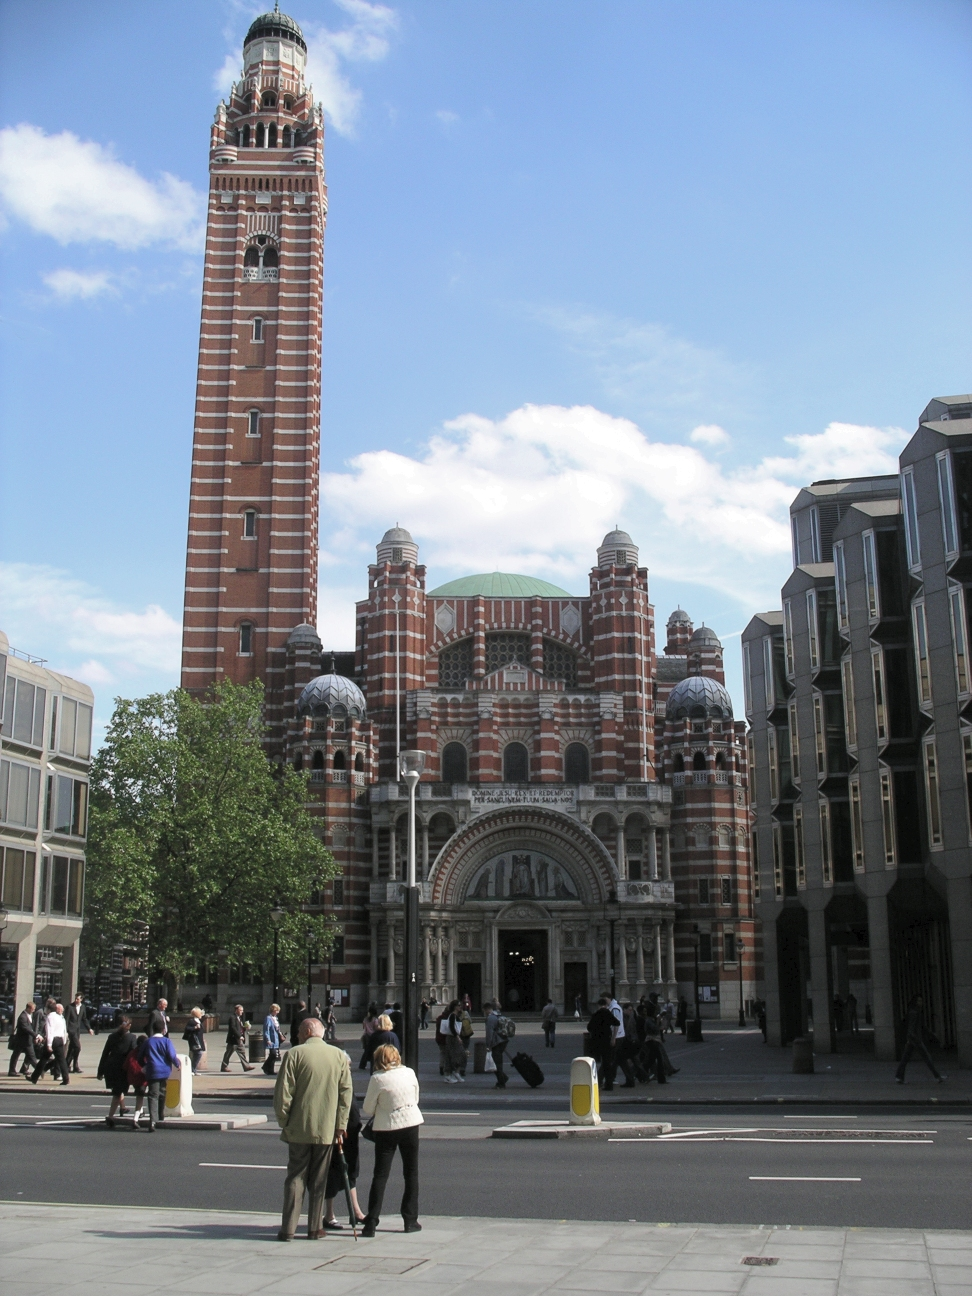 http://upload.wikimedia.org/wikipedia/commons/0/05/WestminsterCathedralFull.jpg